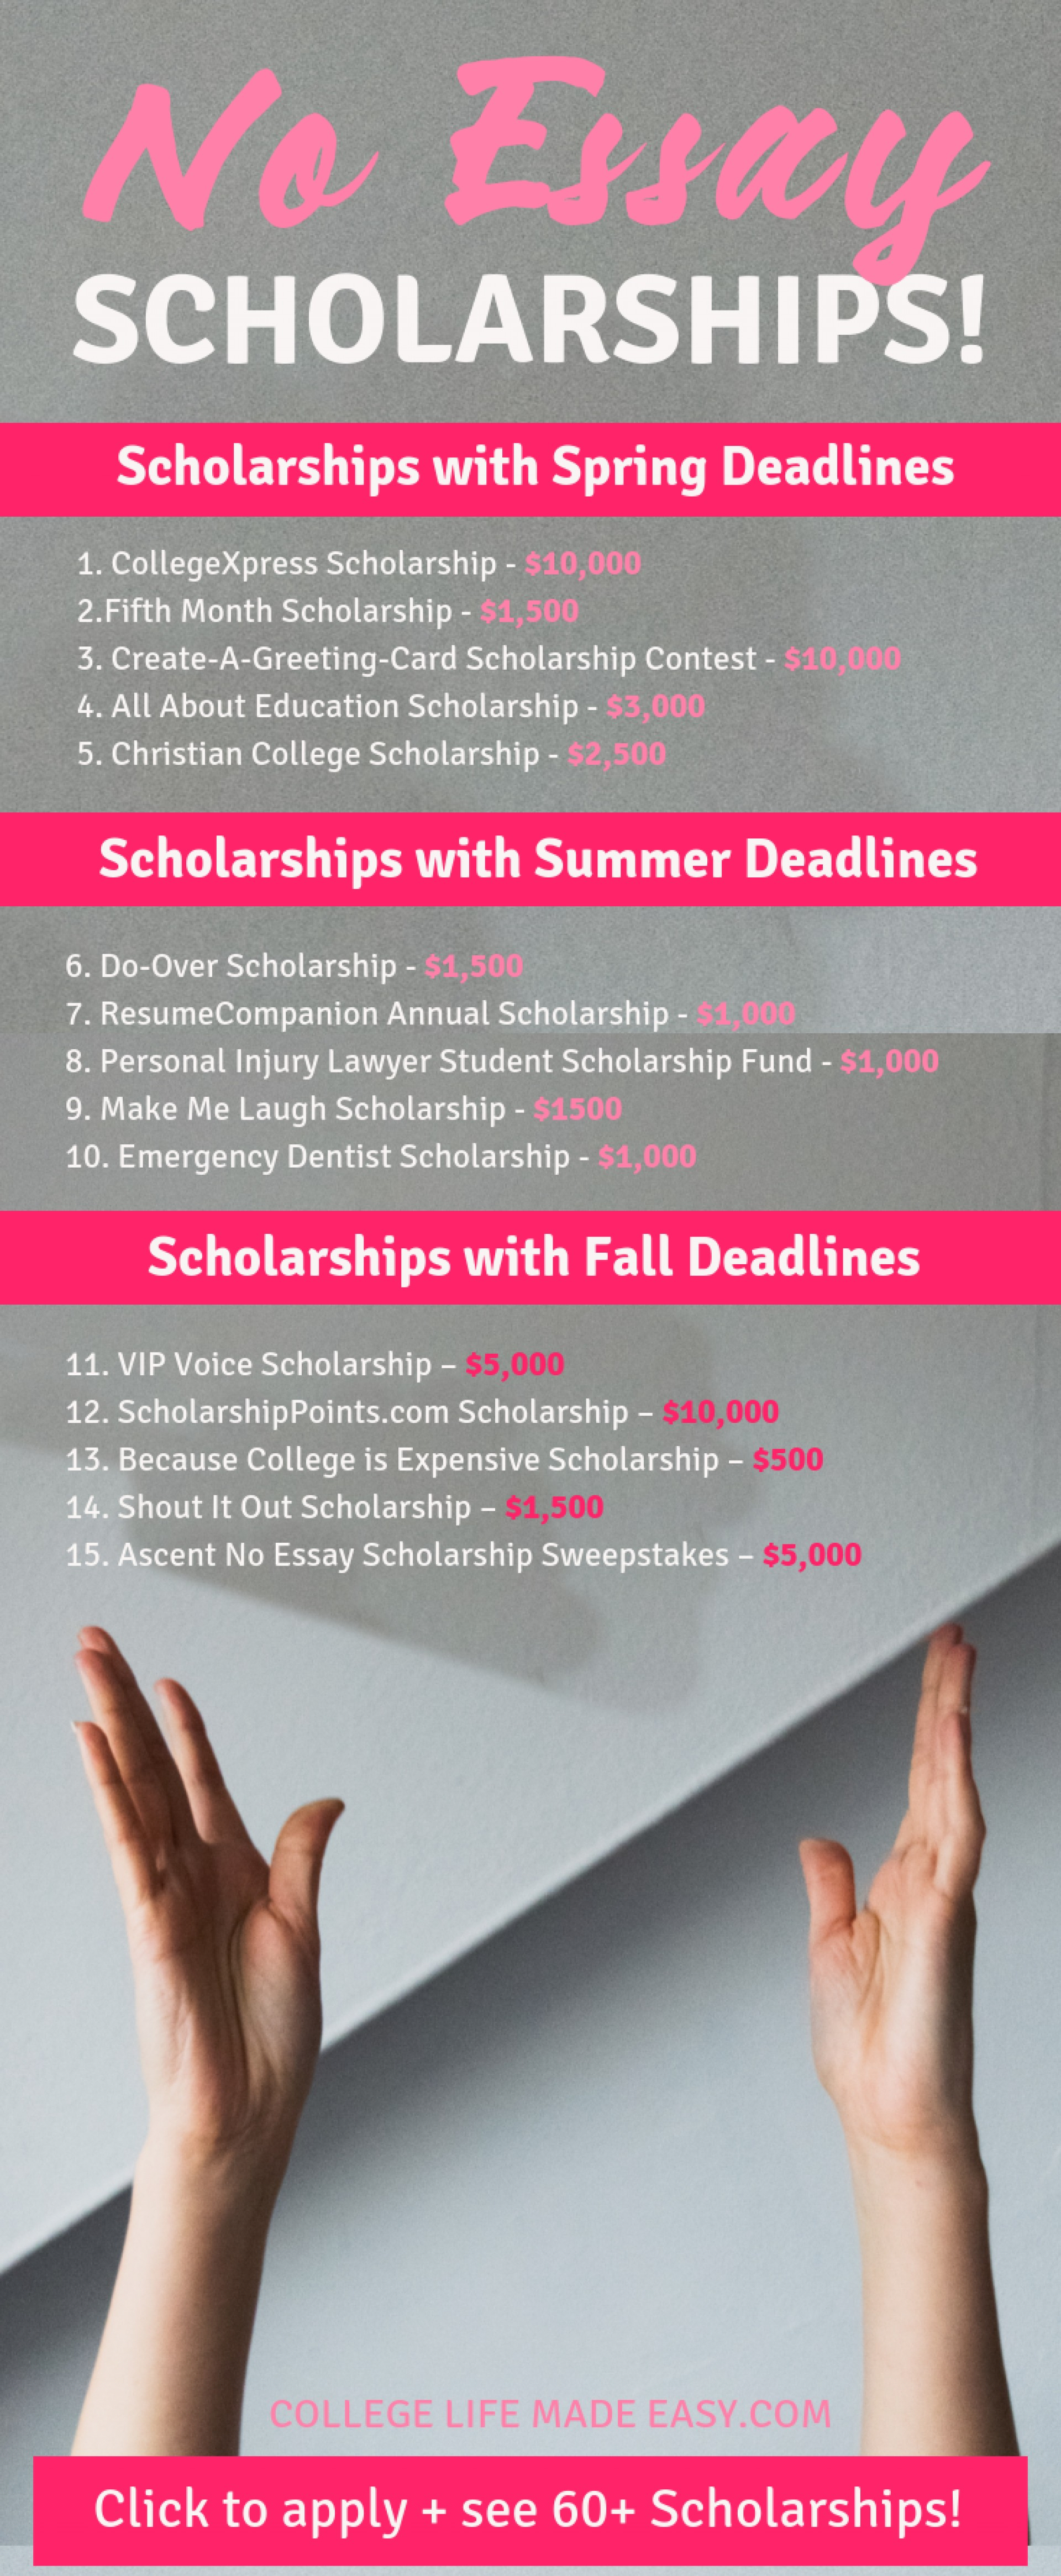 012 Essay Example Scholarships With Unbelievable No Without Requirements Essays Required College 1920